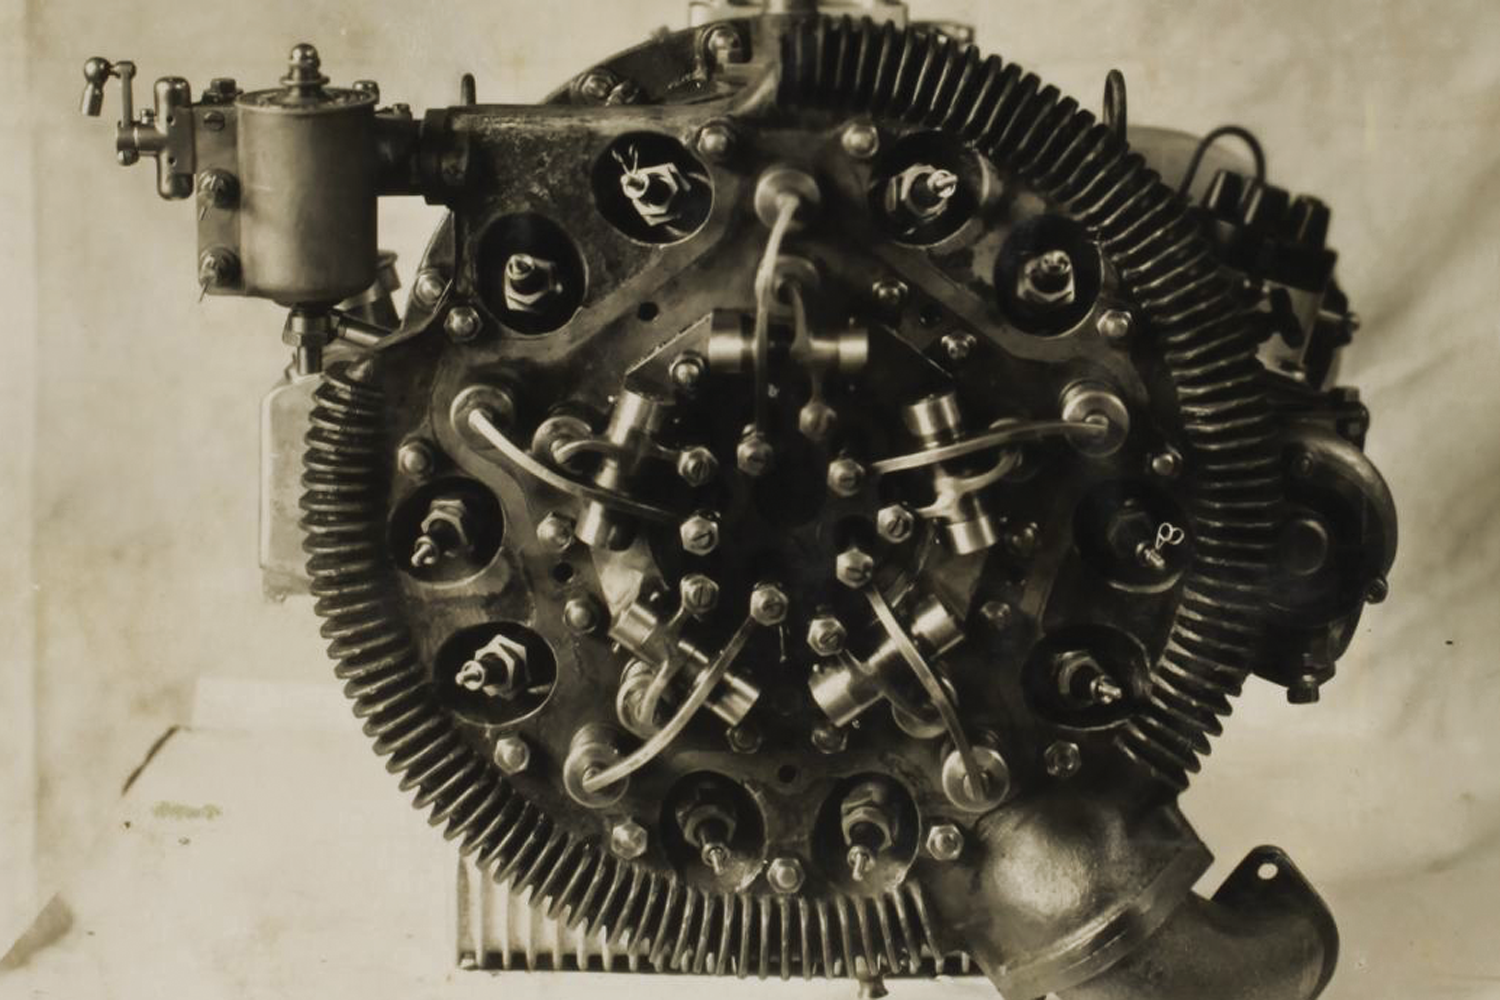 Car engine. (Image: Museums Victoria Collection)